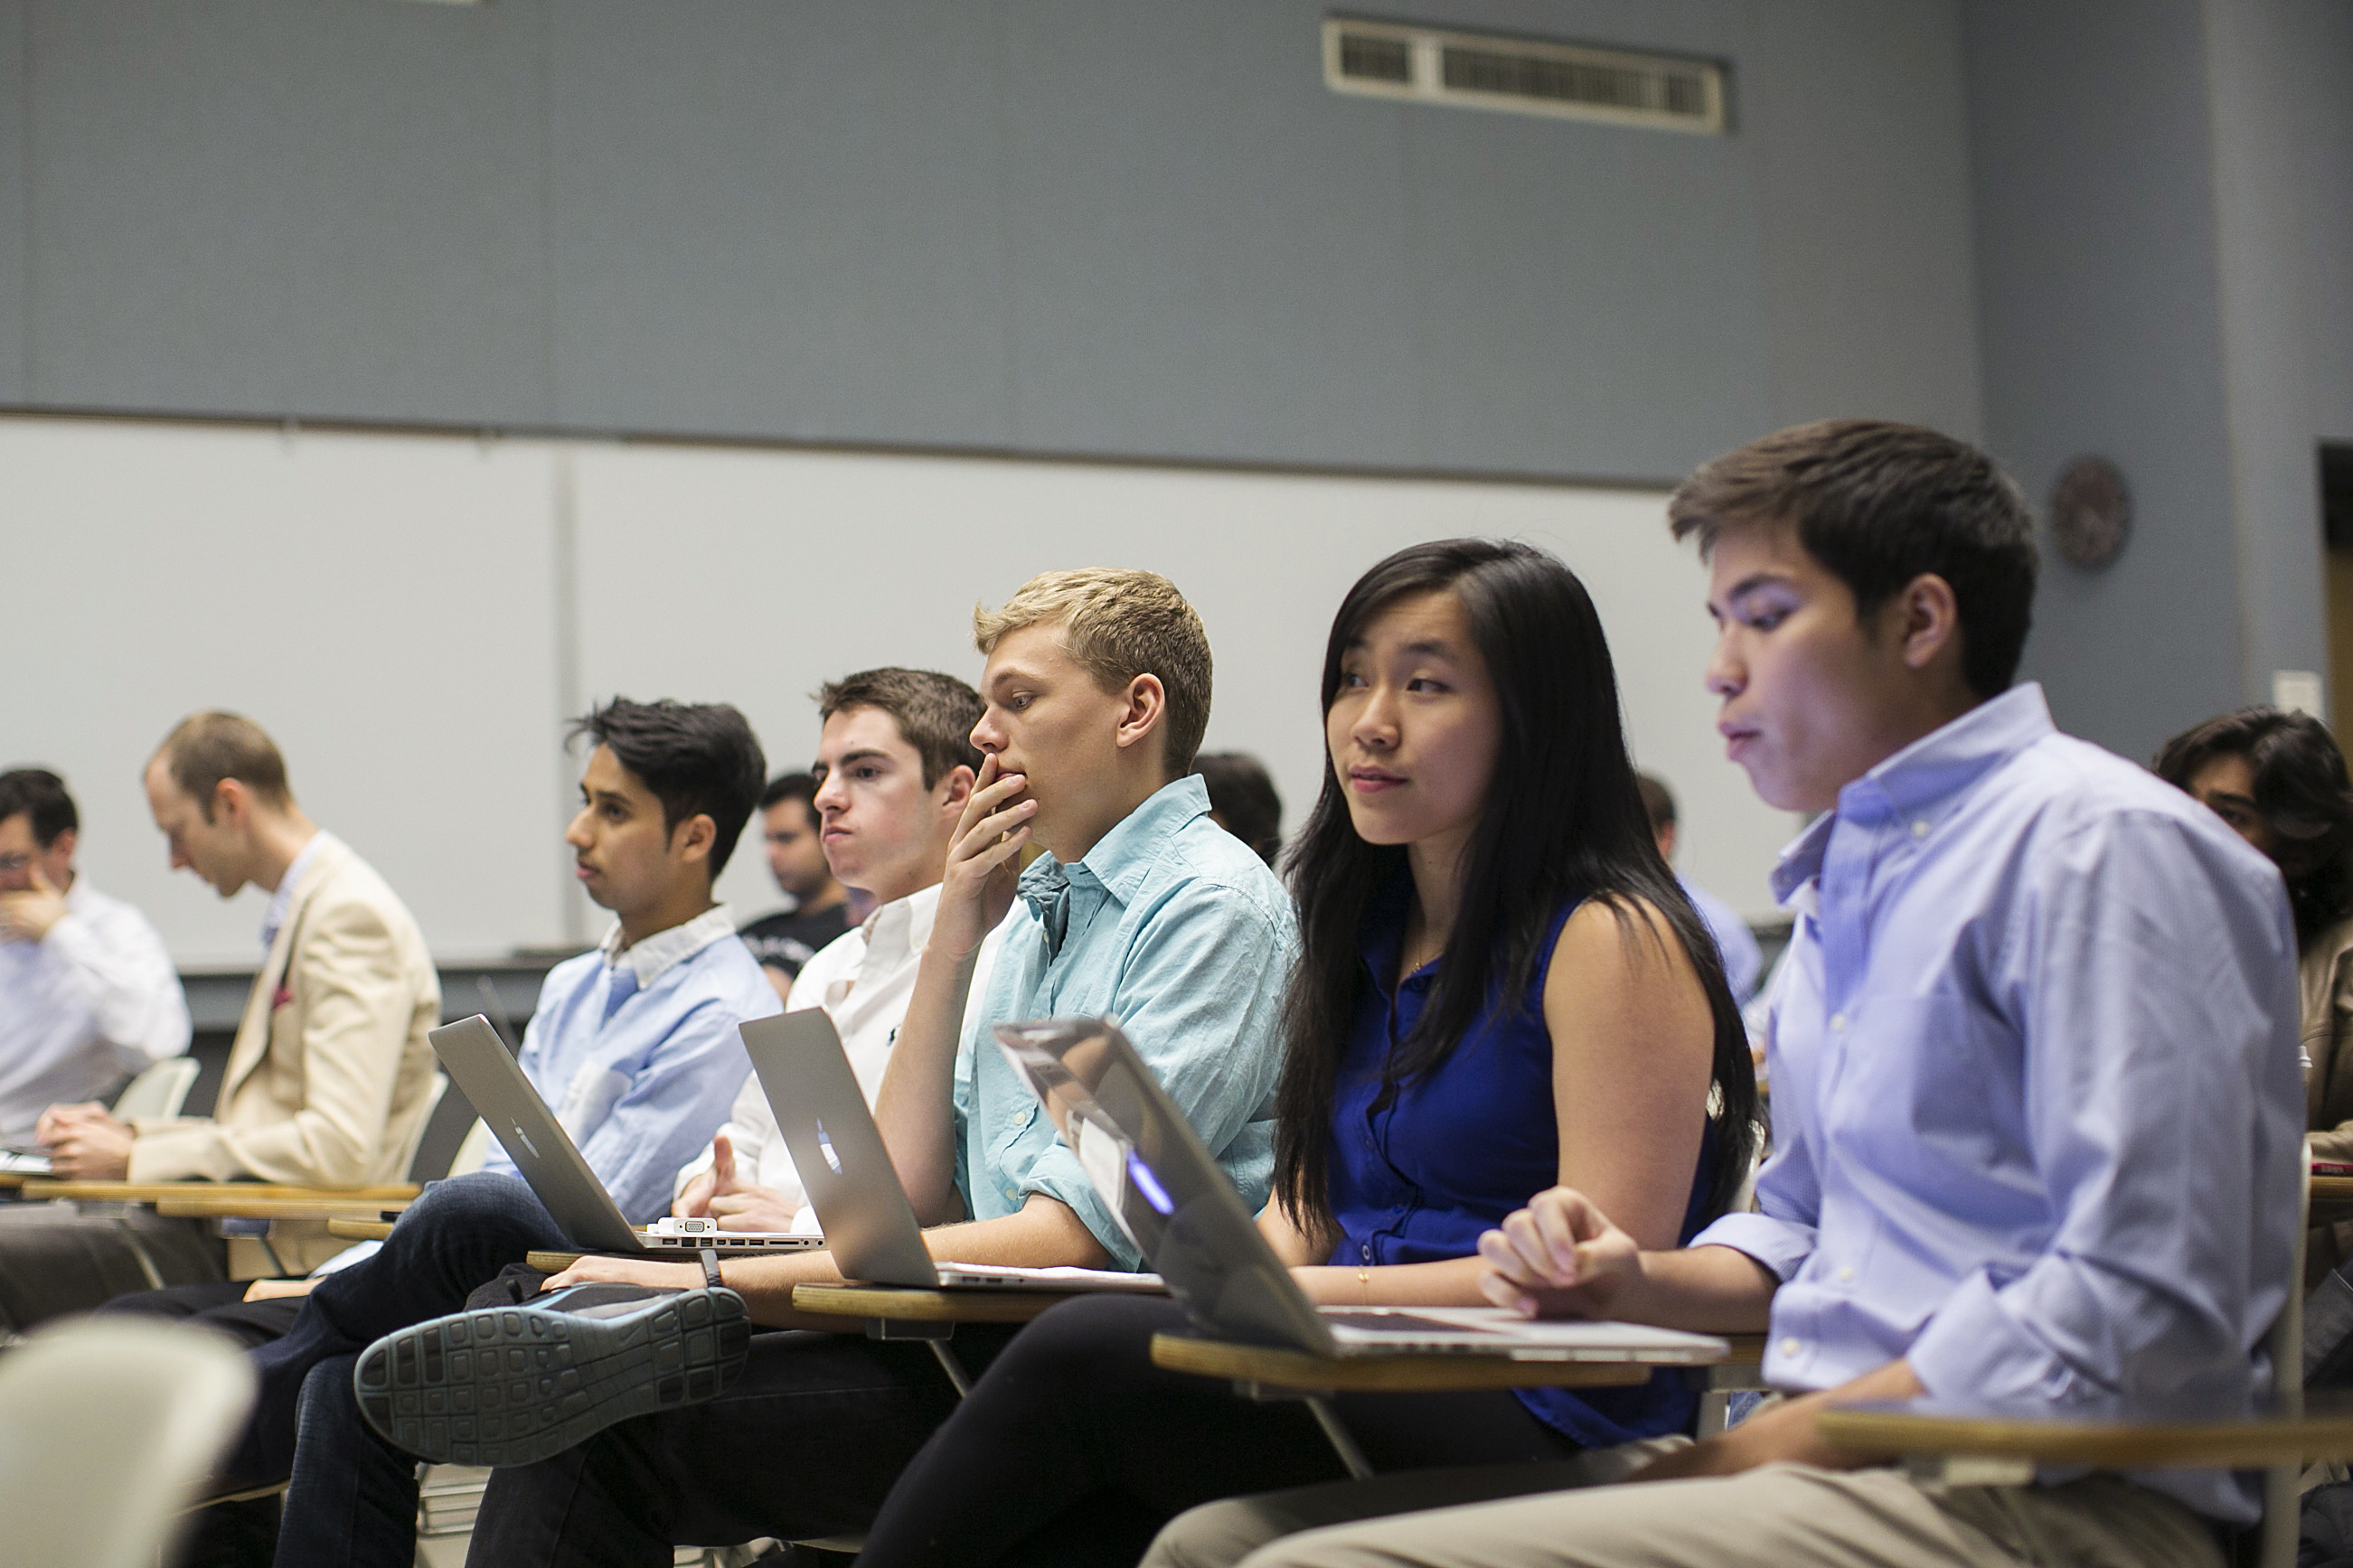 Stanford University students listen while classmates make a presentation to a group of visiting venture capitalists during their Technology Entrepreneurship class in Stanford, California March 11, 2014.